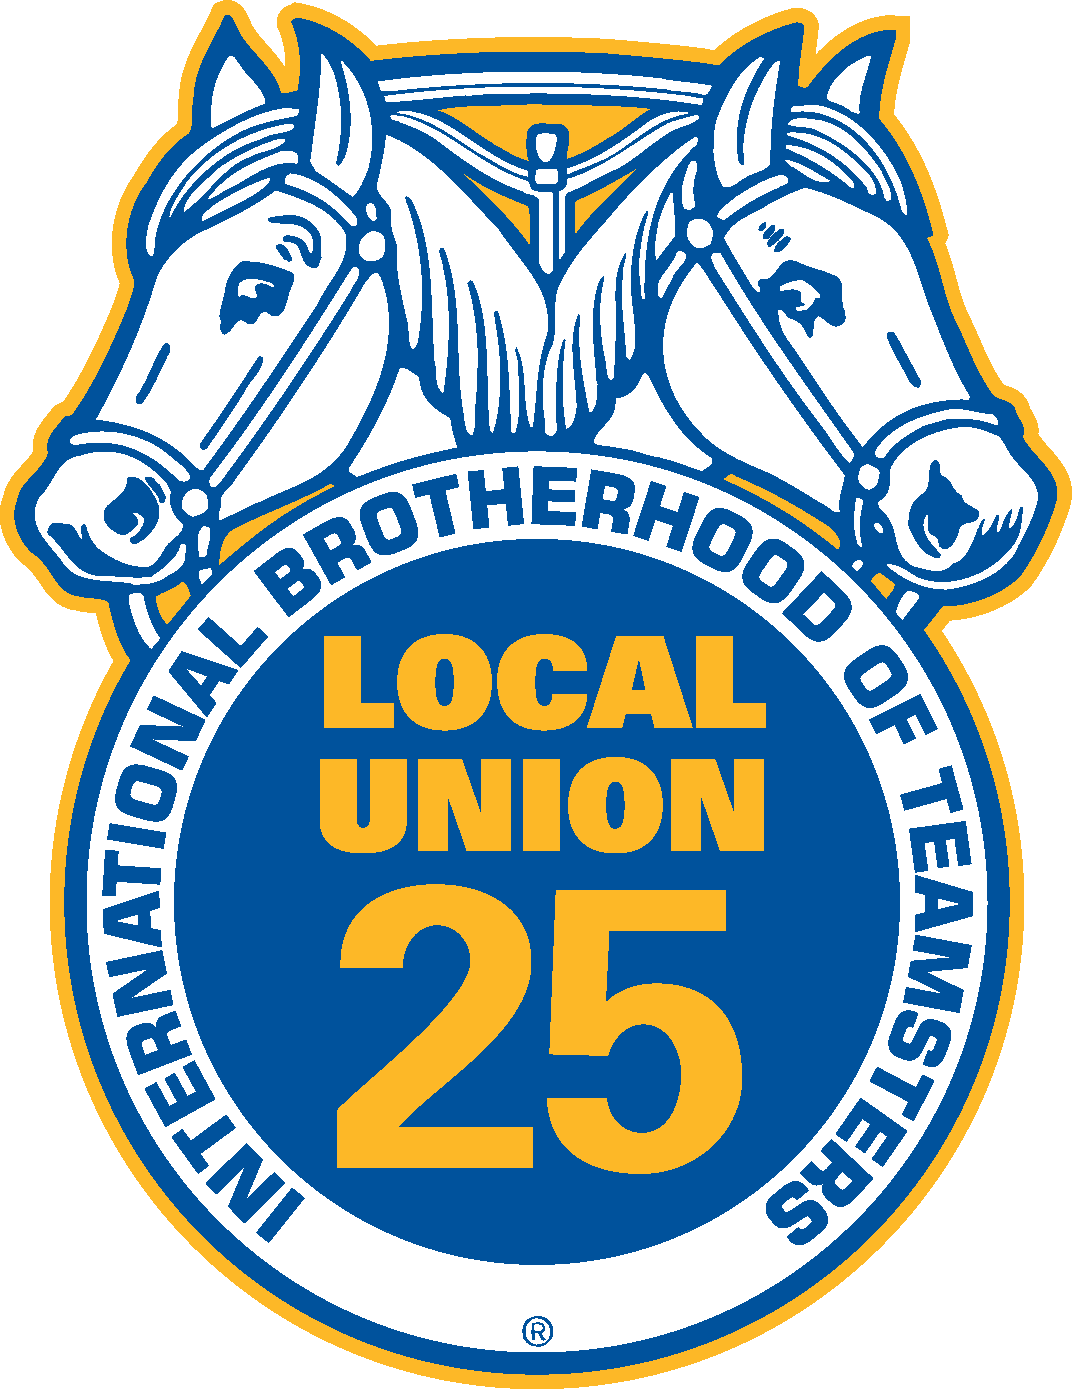 Teamsters Local Union 25